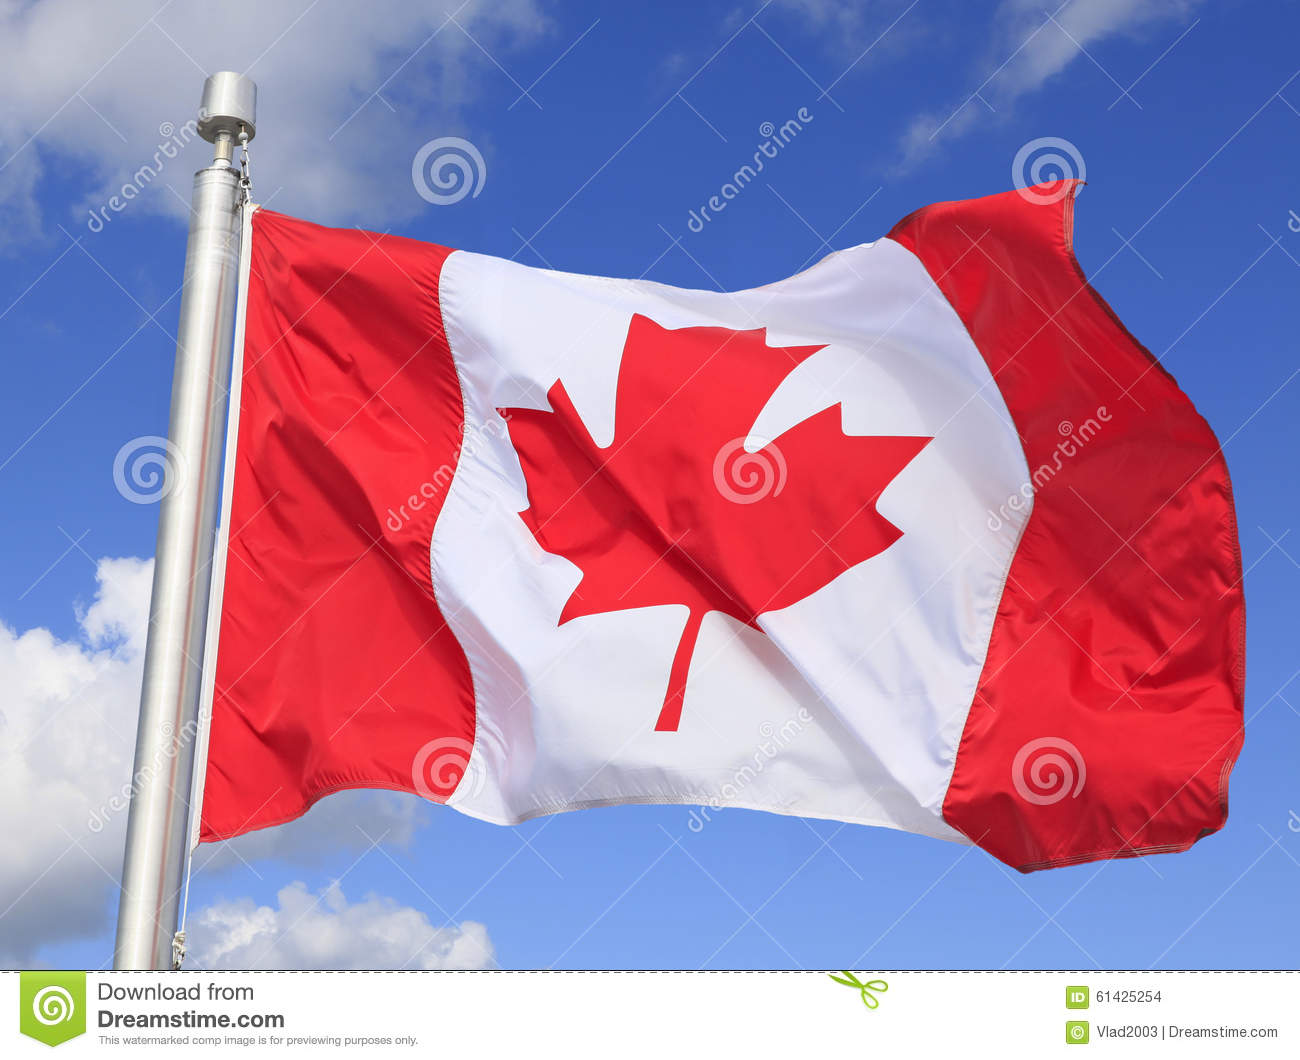 Canadian flag waving on the wind